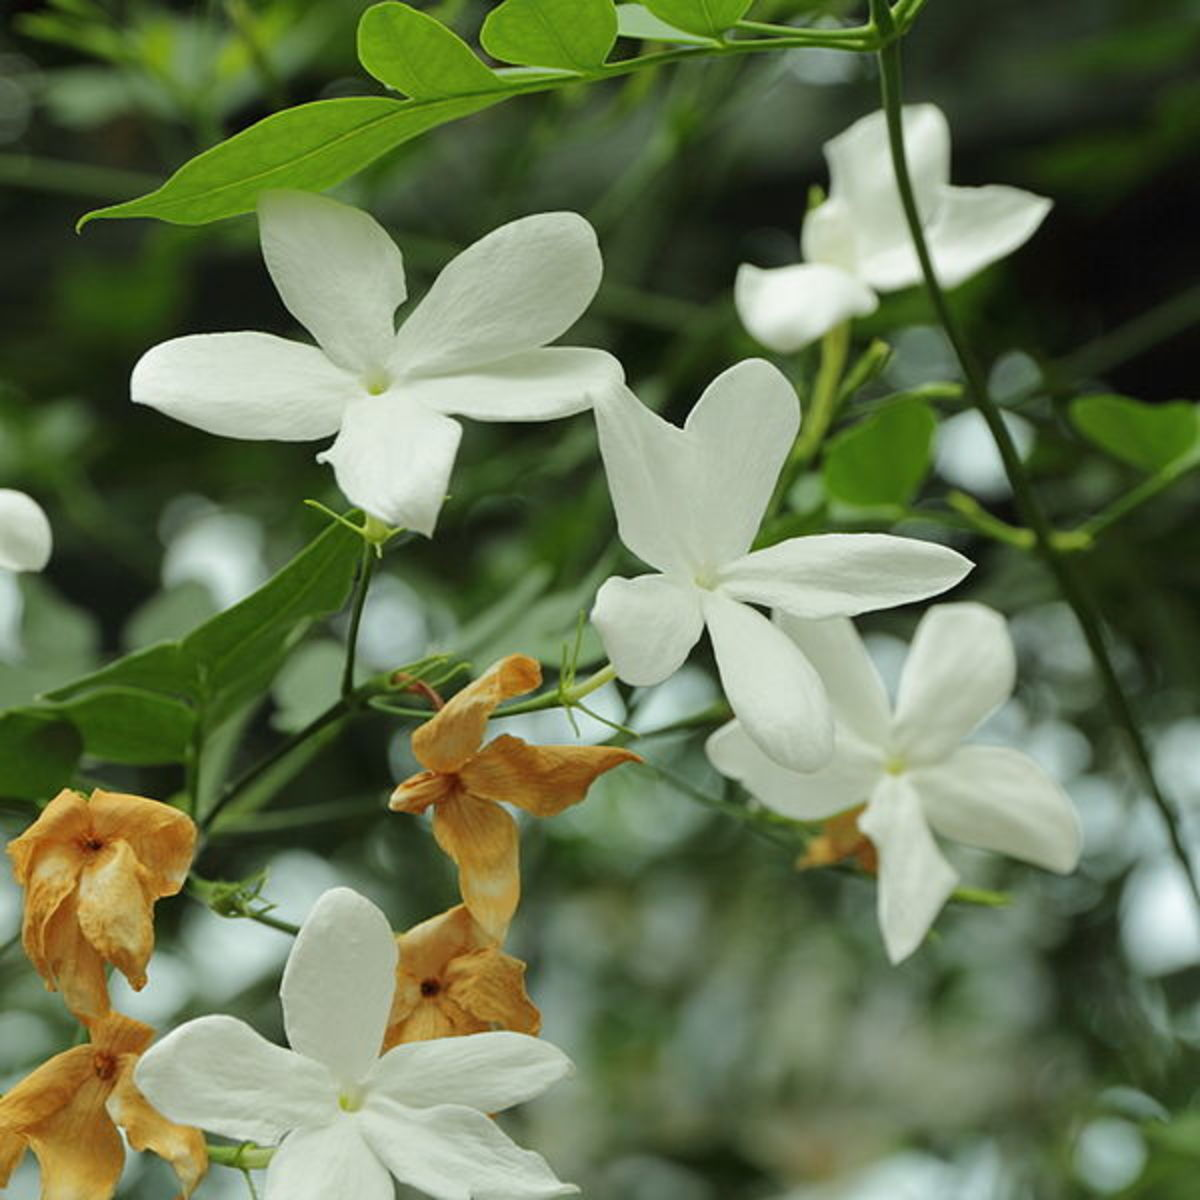 Why Is Jasmine Essential Oil Used in Expensive Perfume?